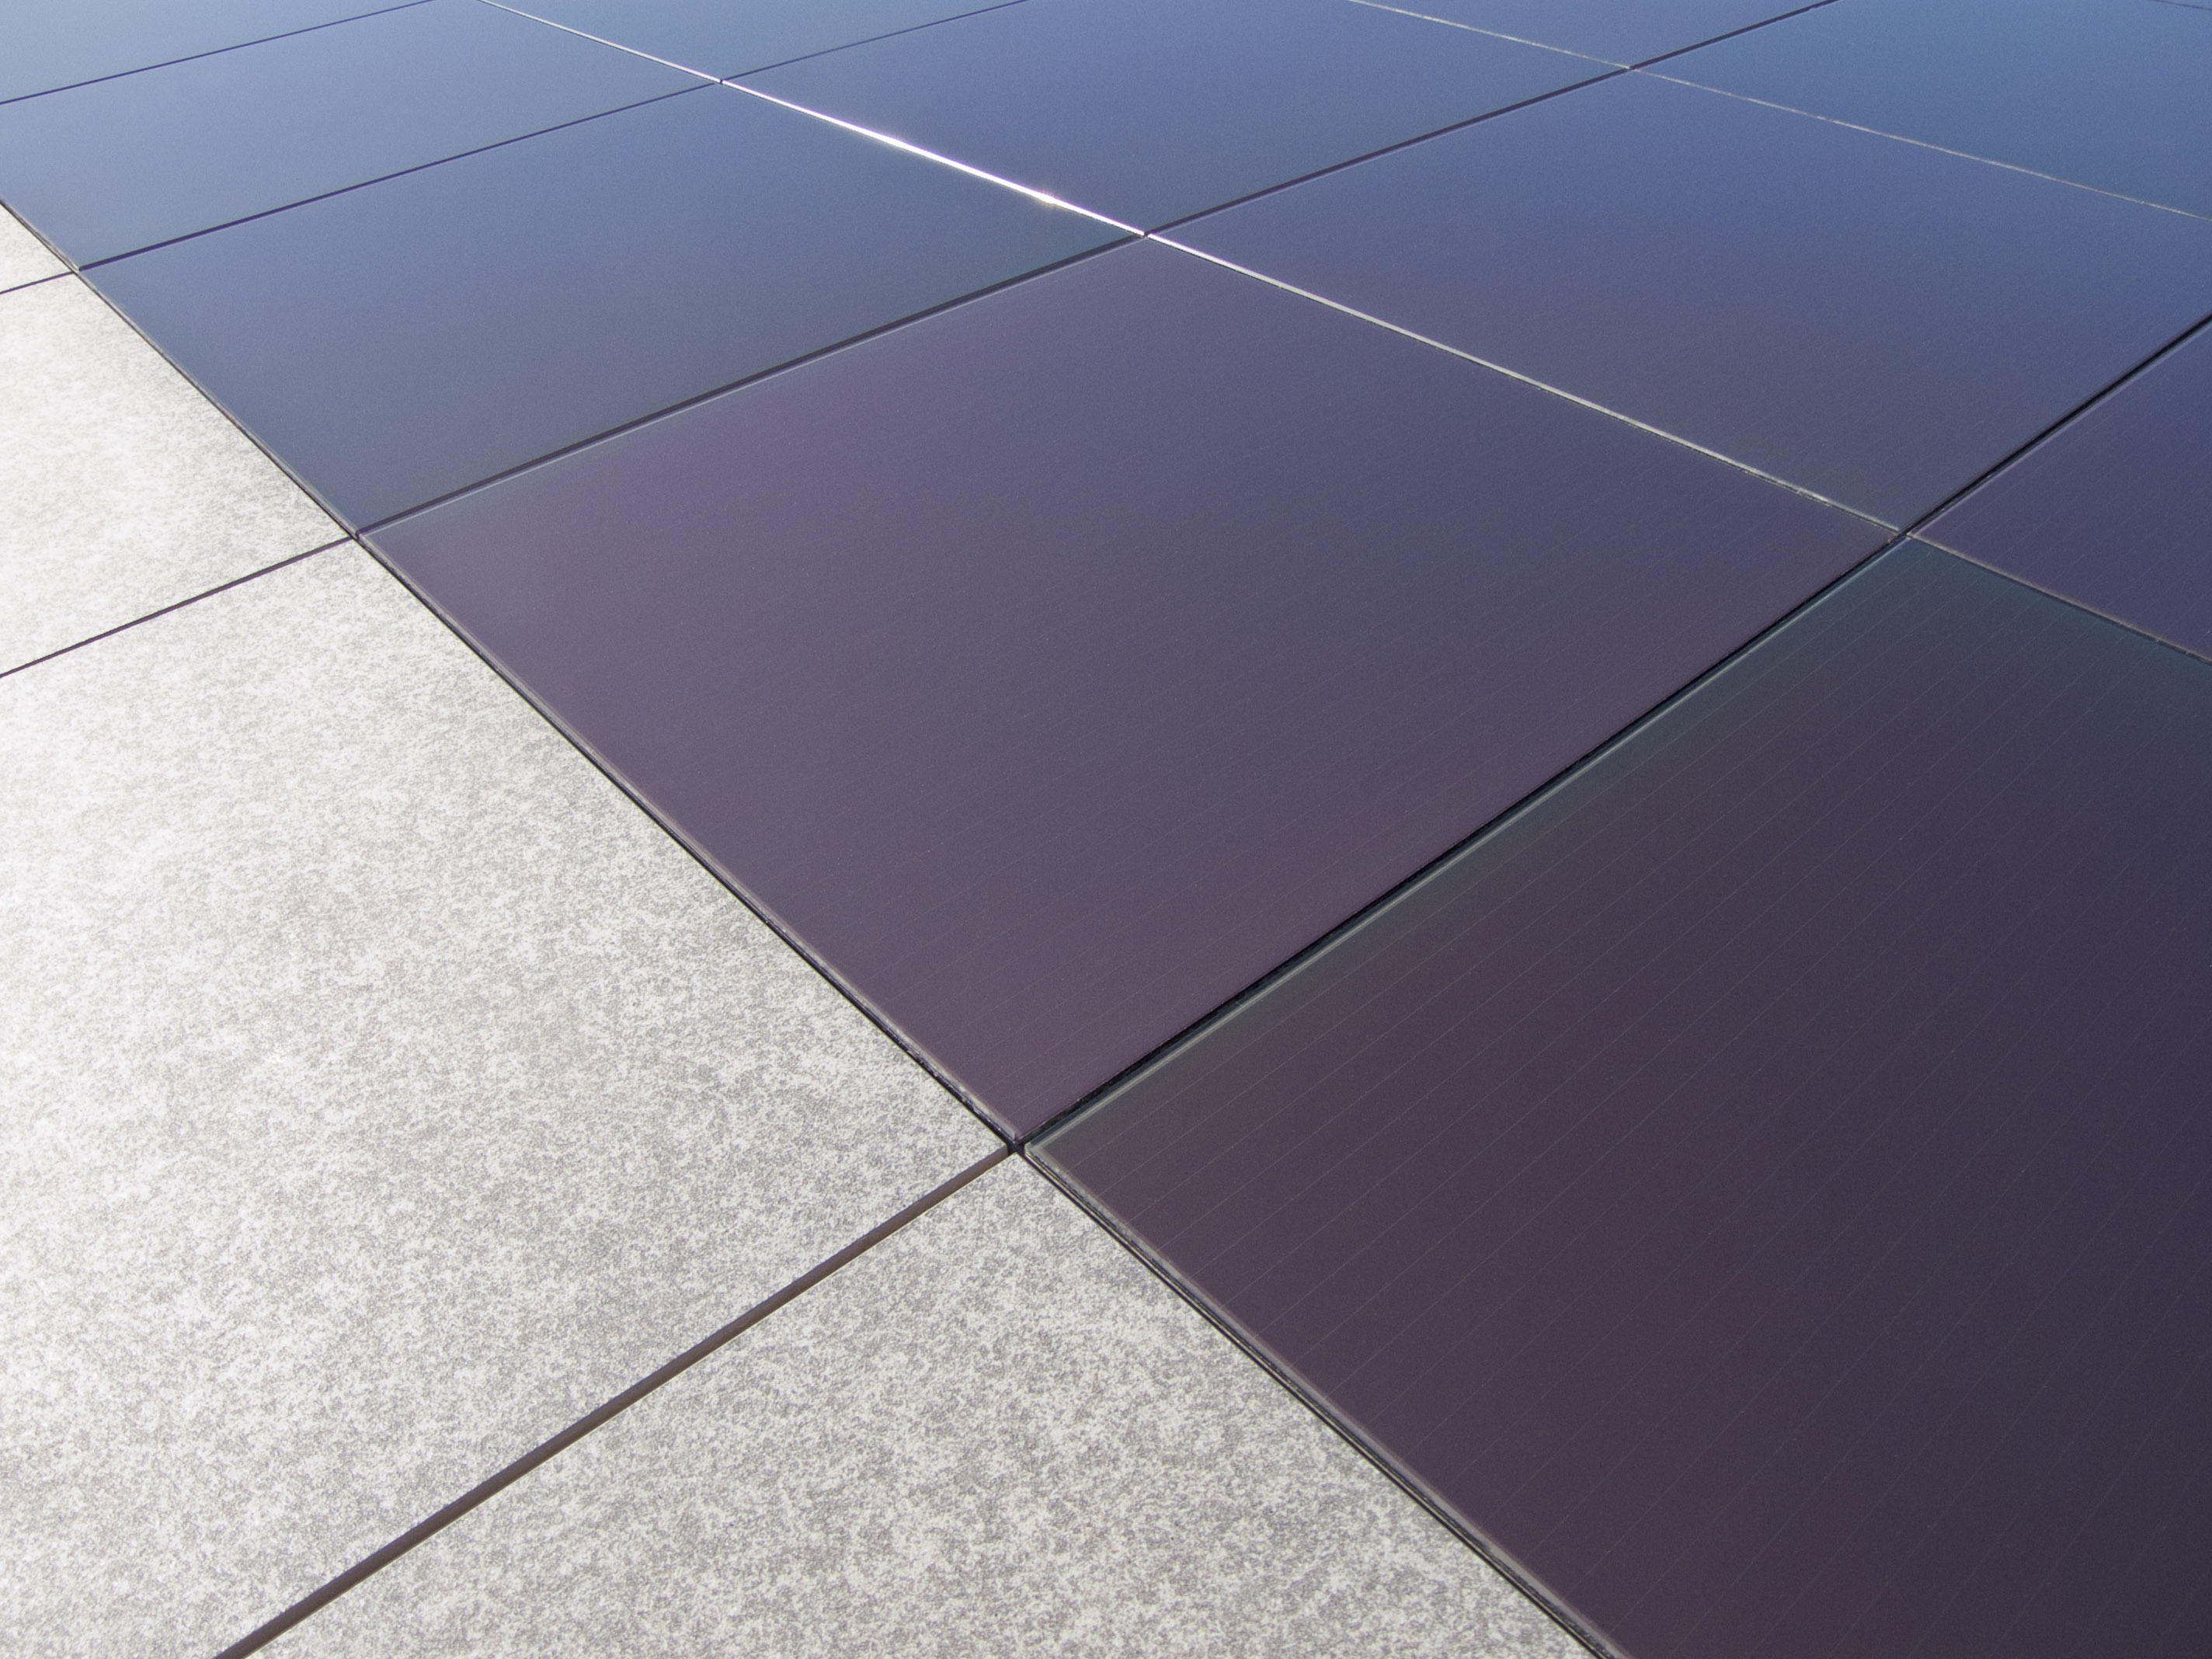 Onyx solar and butech develop first to market photovoltaic pavement onyx solar and butech develop first to market photovoltaic pavement dailygadgetfo Choice Image